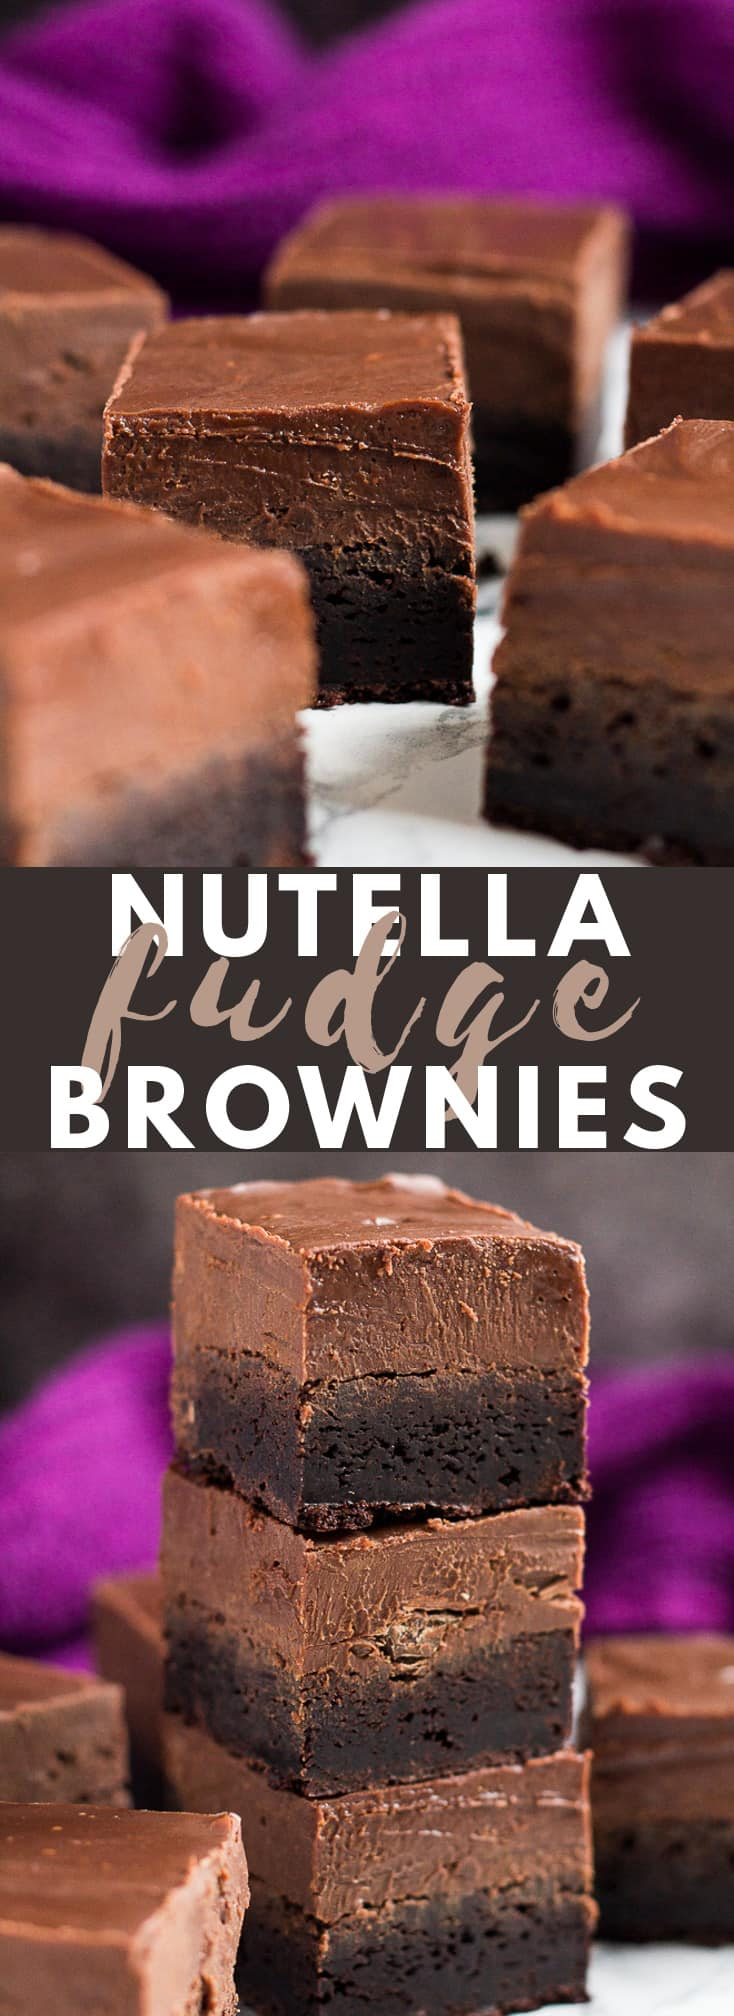 Nutella Fudge Brownies – Deliciously thick and fudgy brownies topped with a creamy Nutella fudge layer. The ultimate brownies!